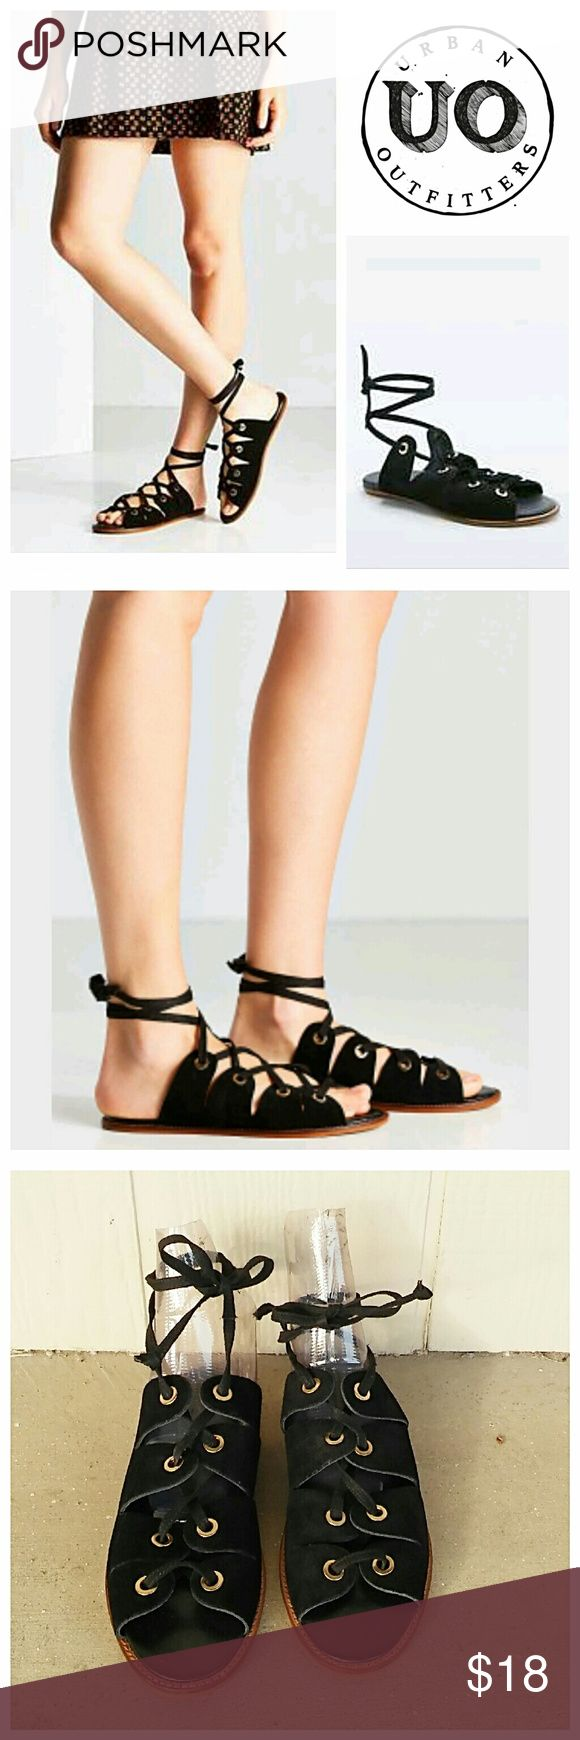 Gestion de stock sous excel youtube - Uo Gladiator Sandals